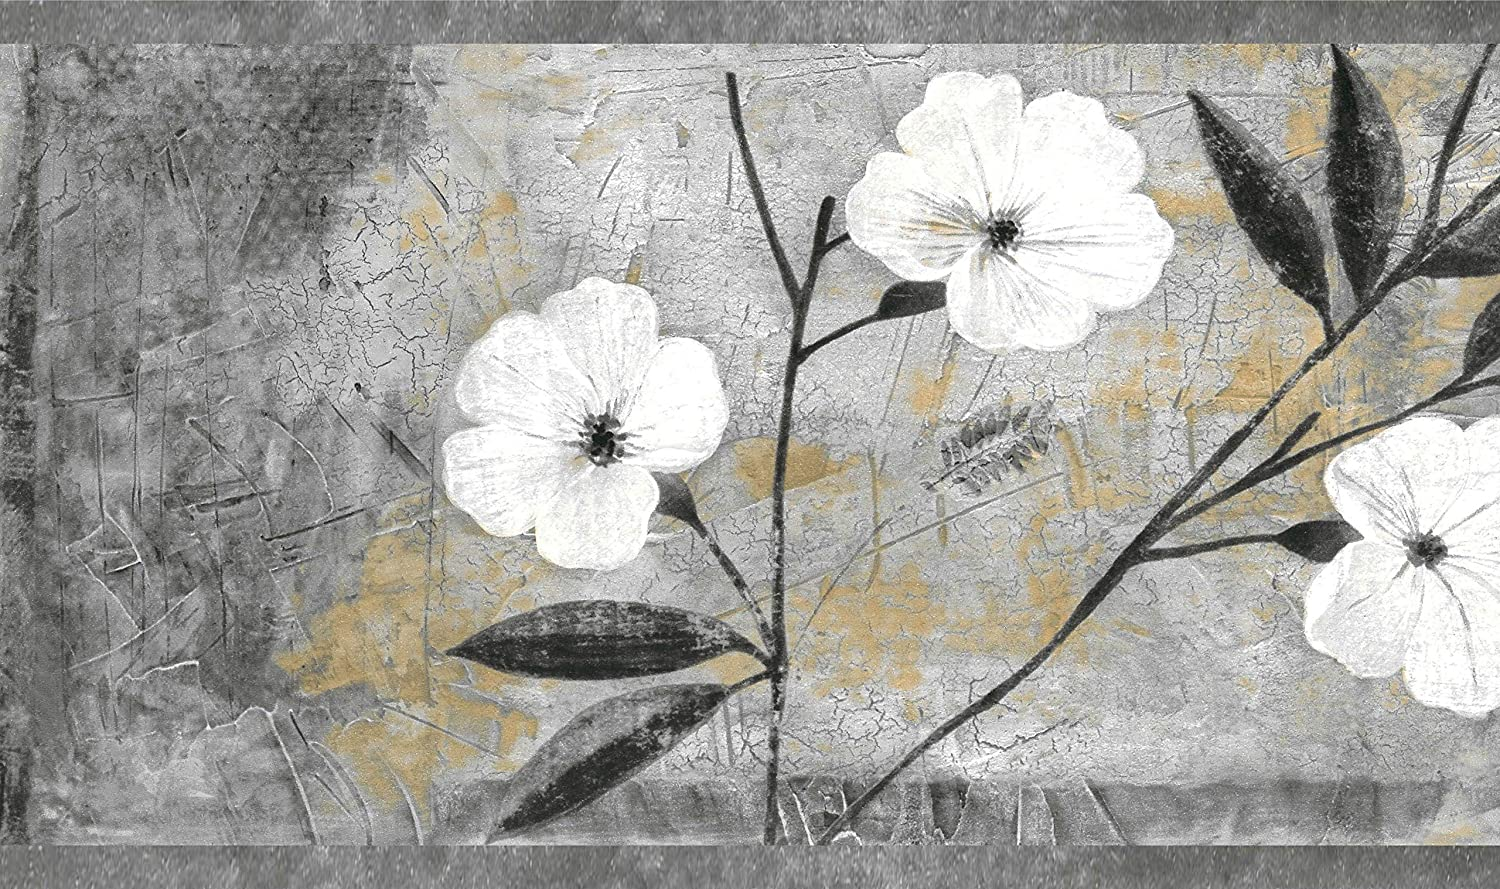 Dundee Deco MGAZB6004 Peel and Stick Floral White Blooming Flowers Self Adhesive Mirror Window Sticker Wallpaper Border 10m X 10cm Roll 33 ft X 4 in